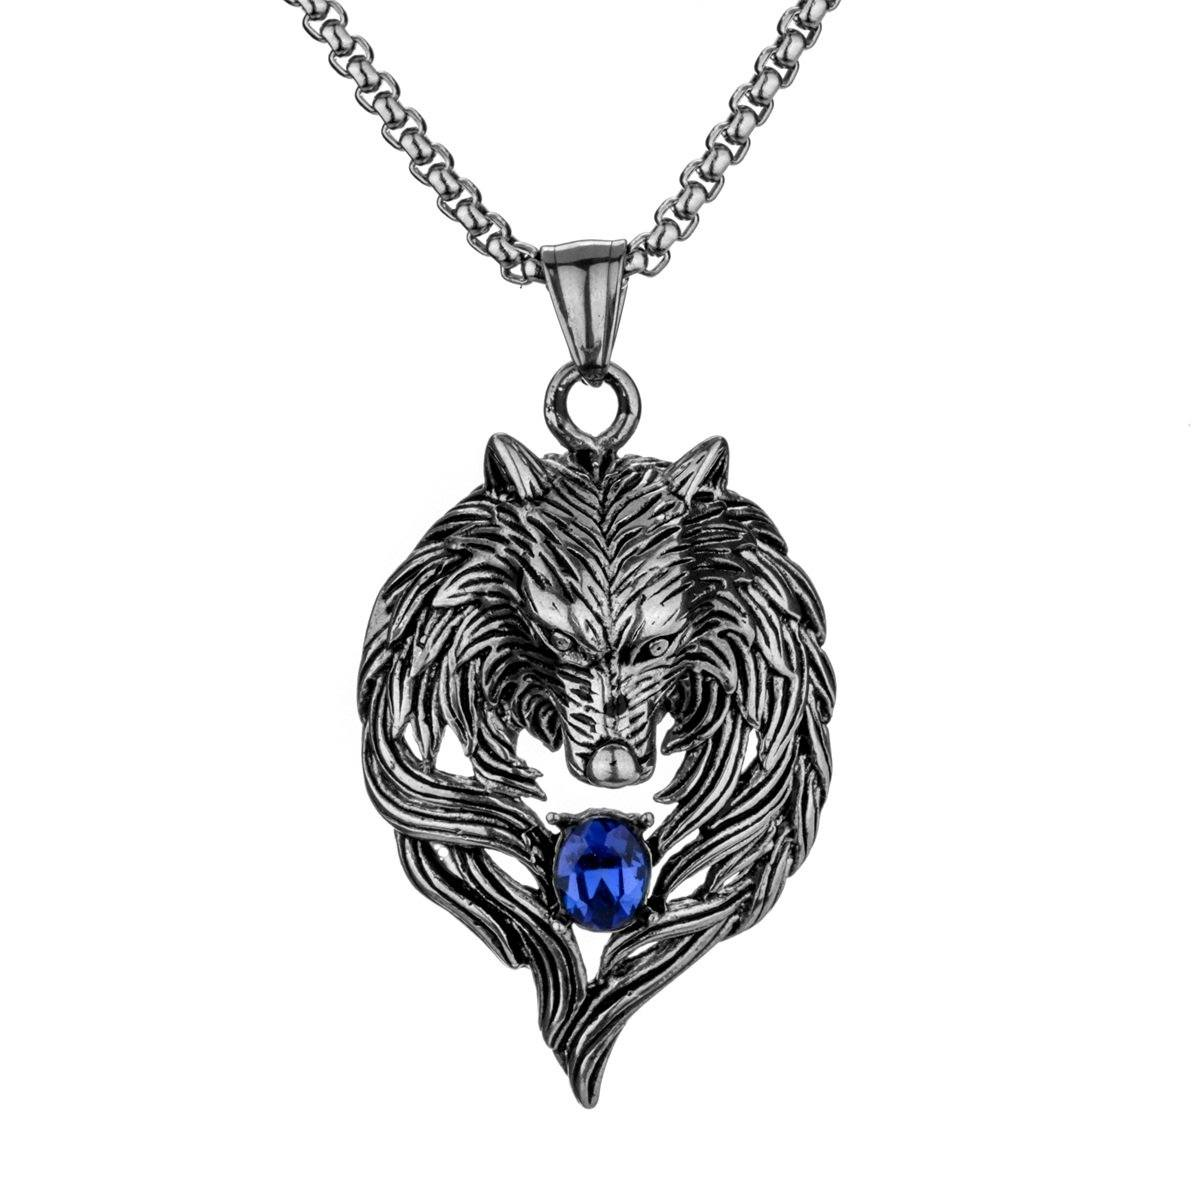 32390953835 - Stainless Steel Wolf Pendant Necklace With CZ Stone